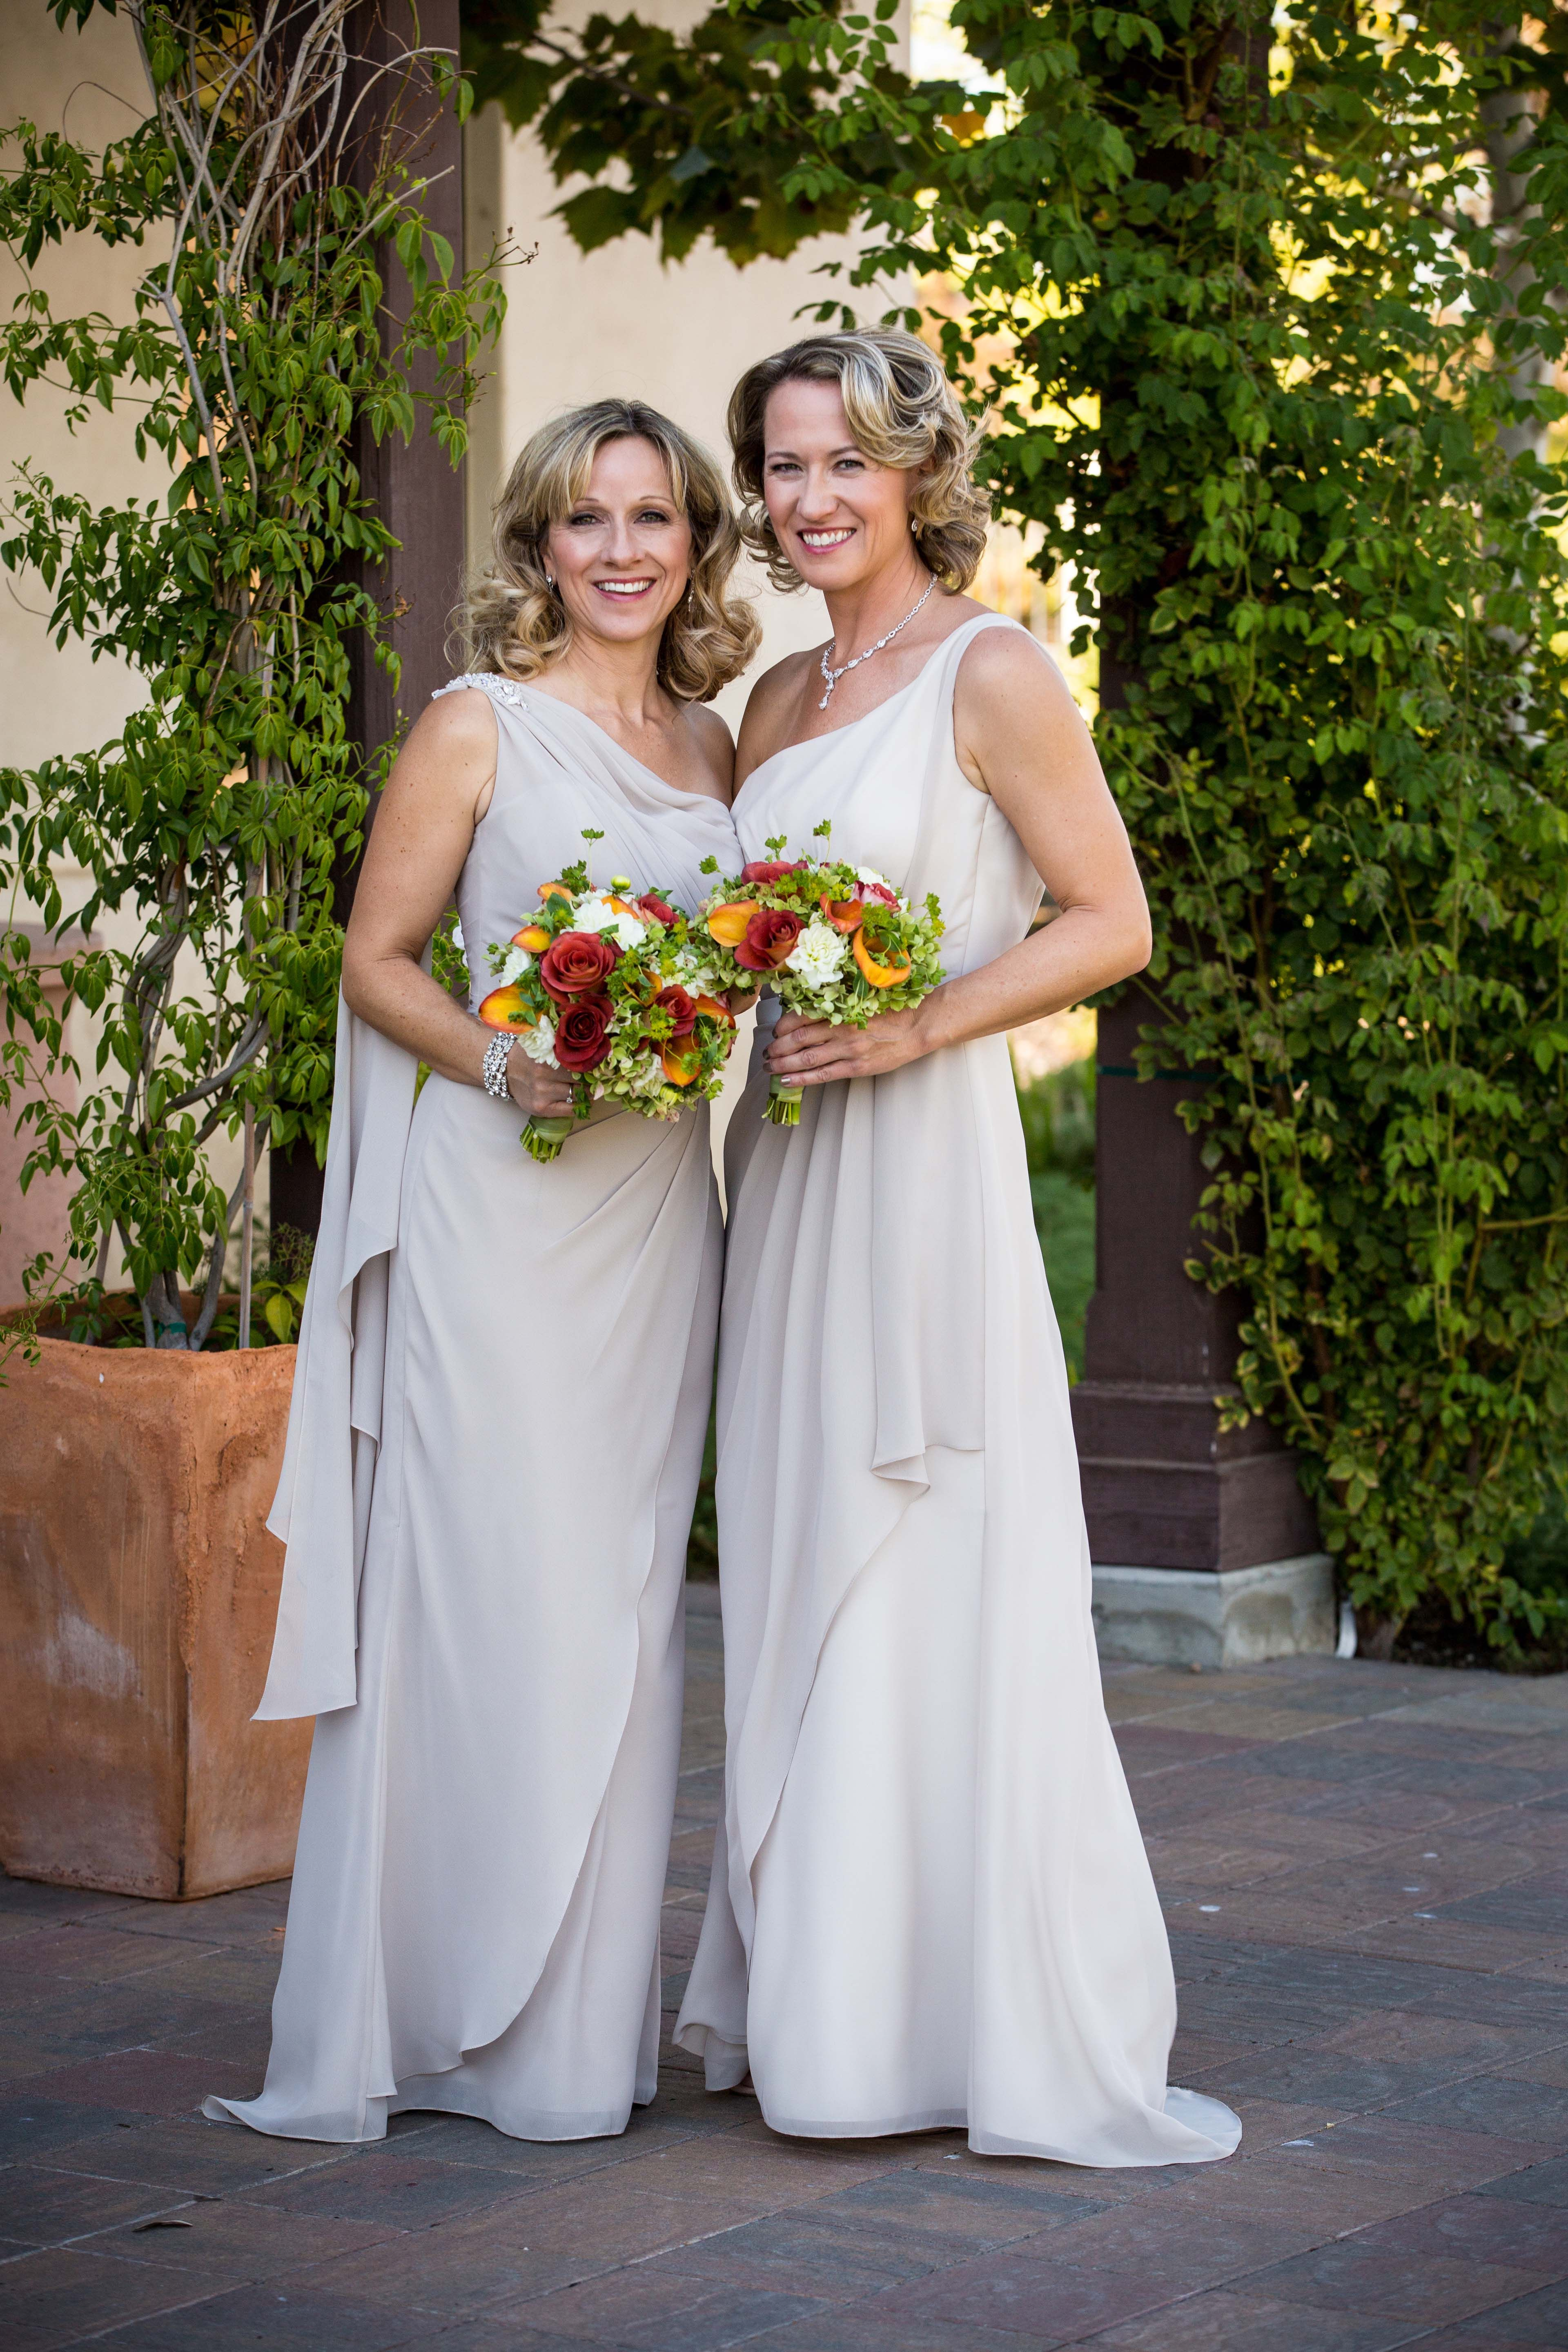 Our wedding dresses by sophia tolli two different styles by the wedding dress ombrellifo Gallery